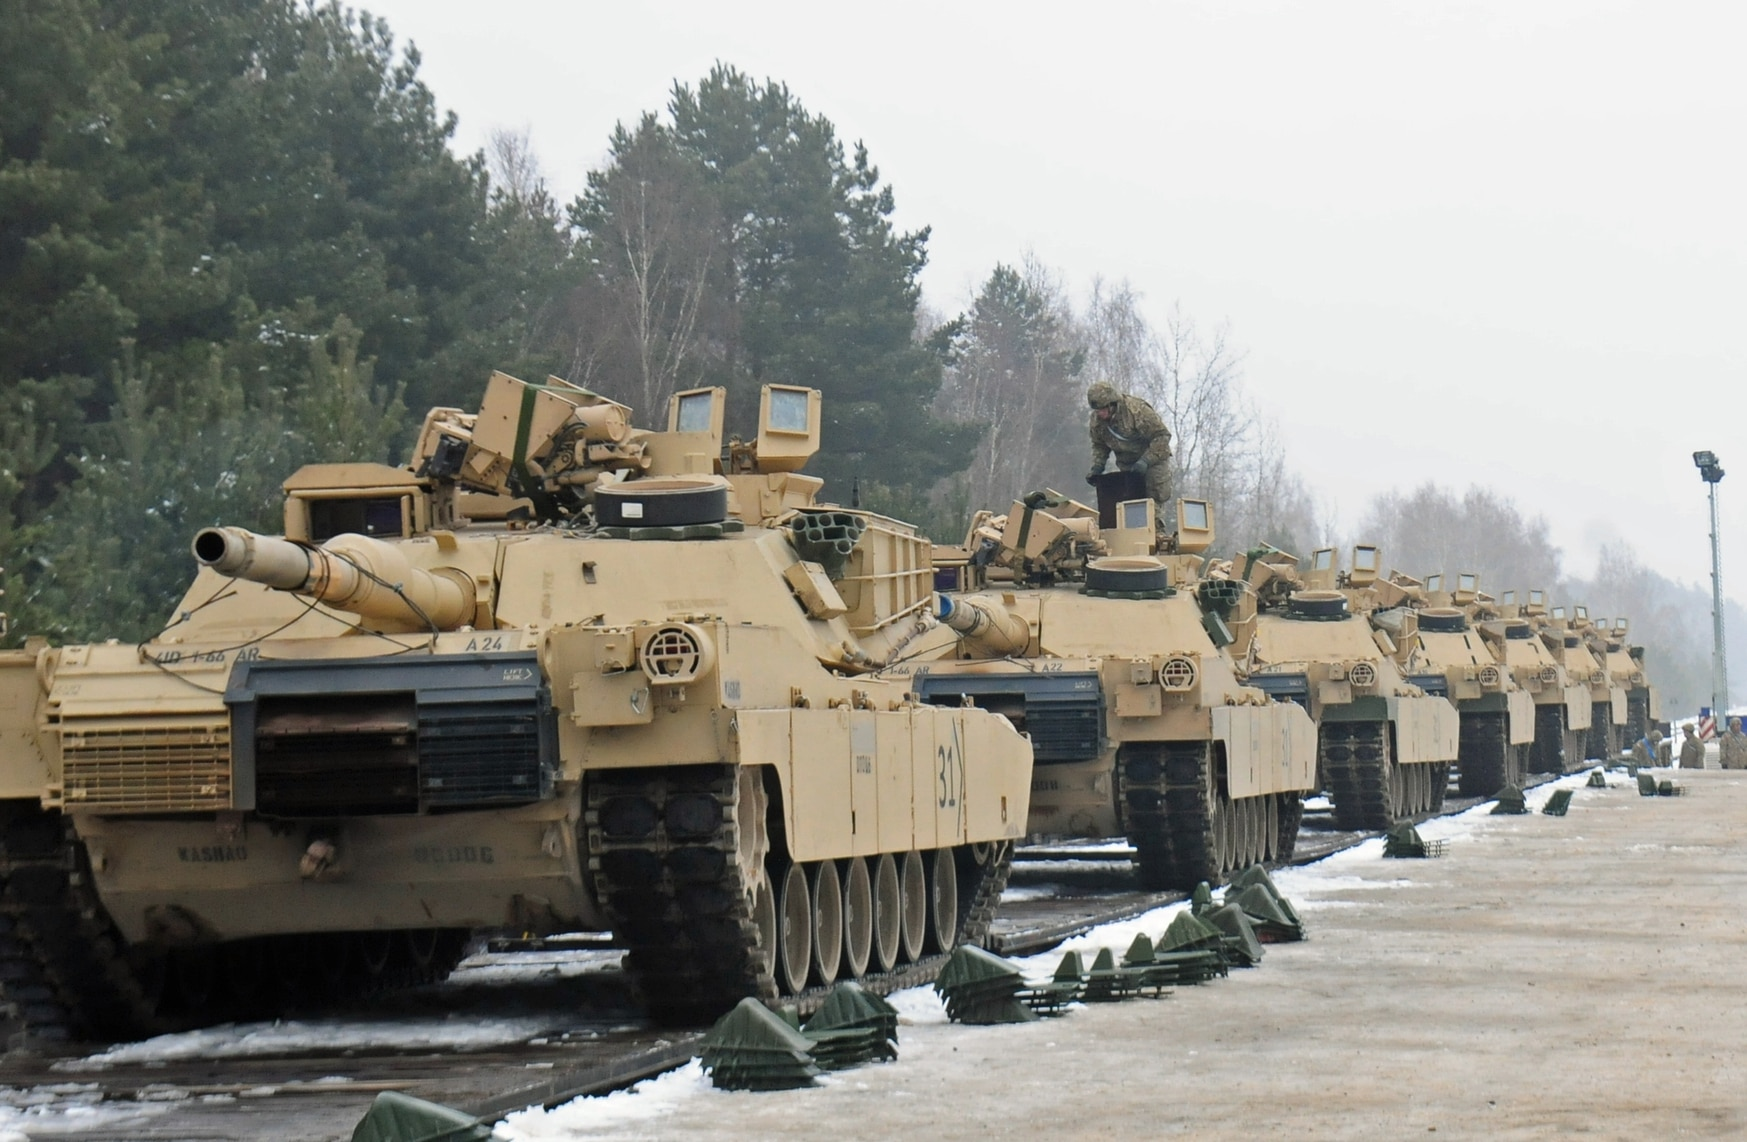 M1A2 Abrams tanks belonging to 1st Battalion, 66th Armored Regiment, 3rd Armored Brigade Combat Team, 4th Infantry Division are loaded onto a flatcar railway Jan. 25, 2017, as part of Atlantic Resolve. (Staff Sgt. Corinna Baltos/Army)